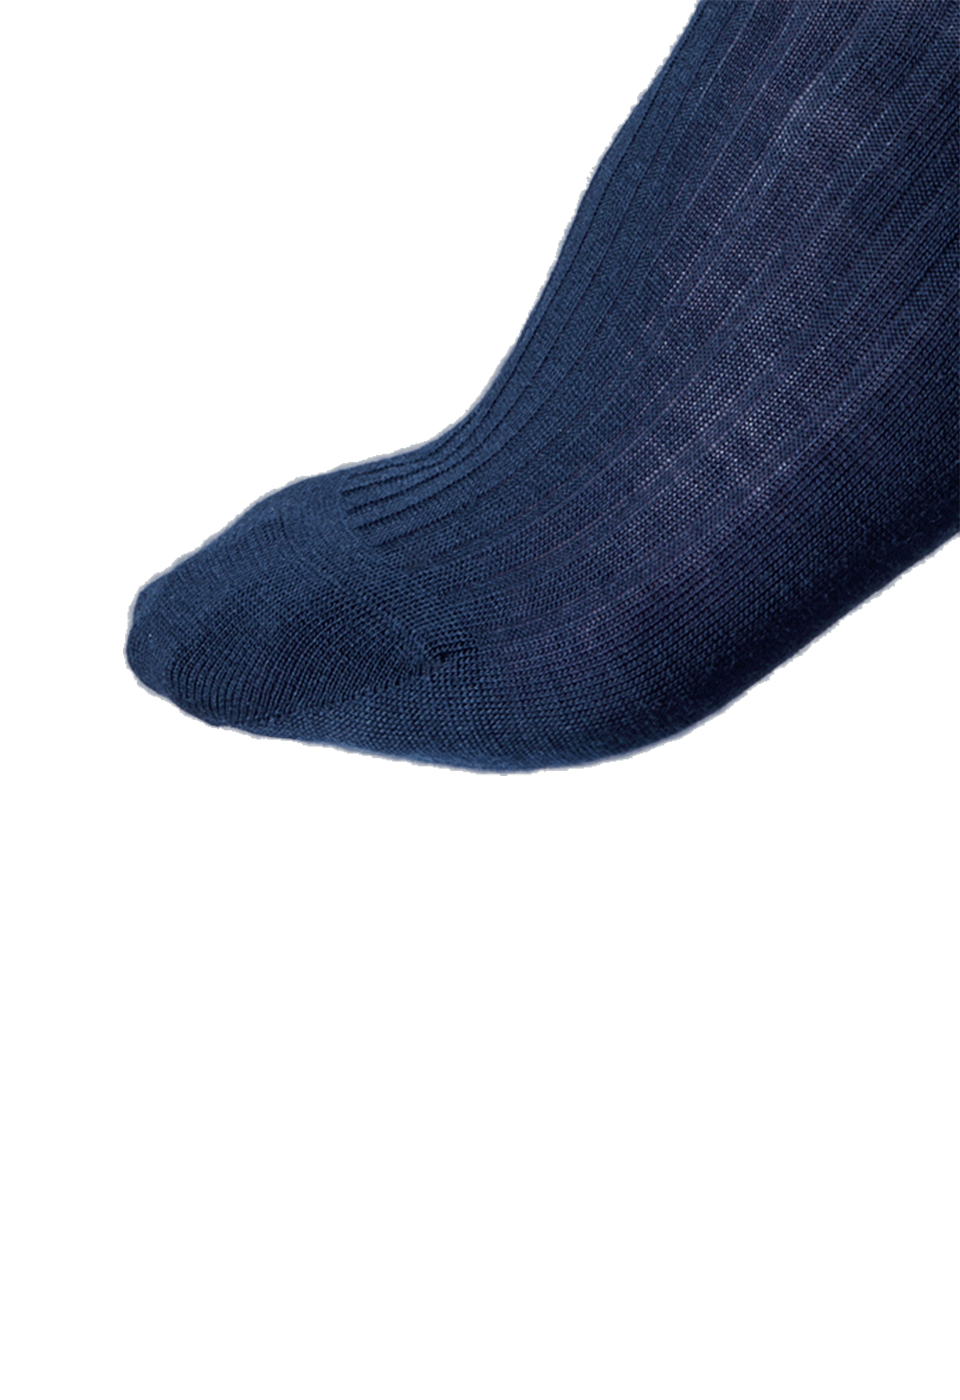 NOSOCKS long wool - marineblauw - tenen